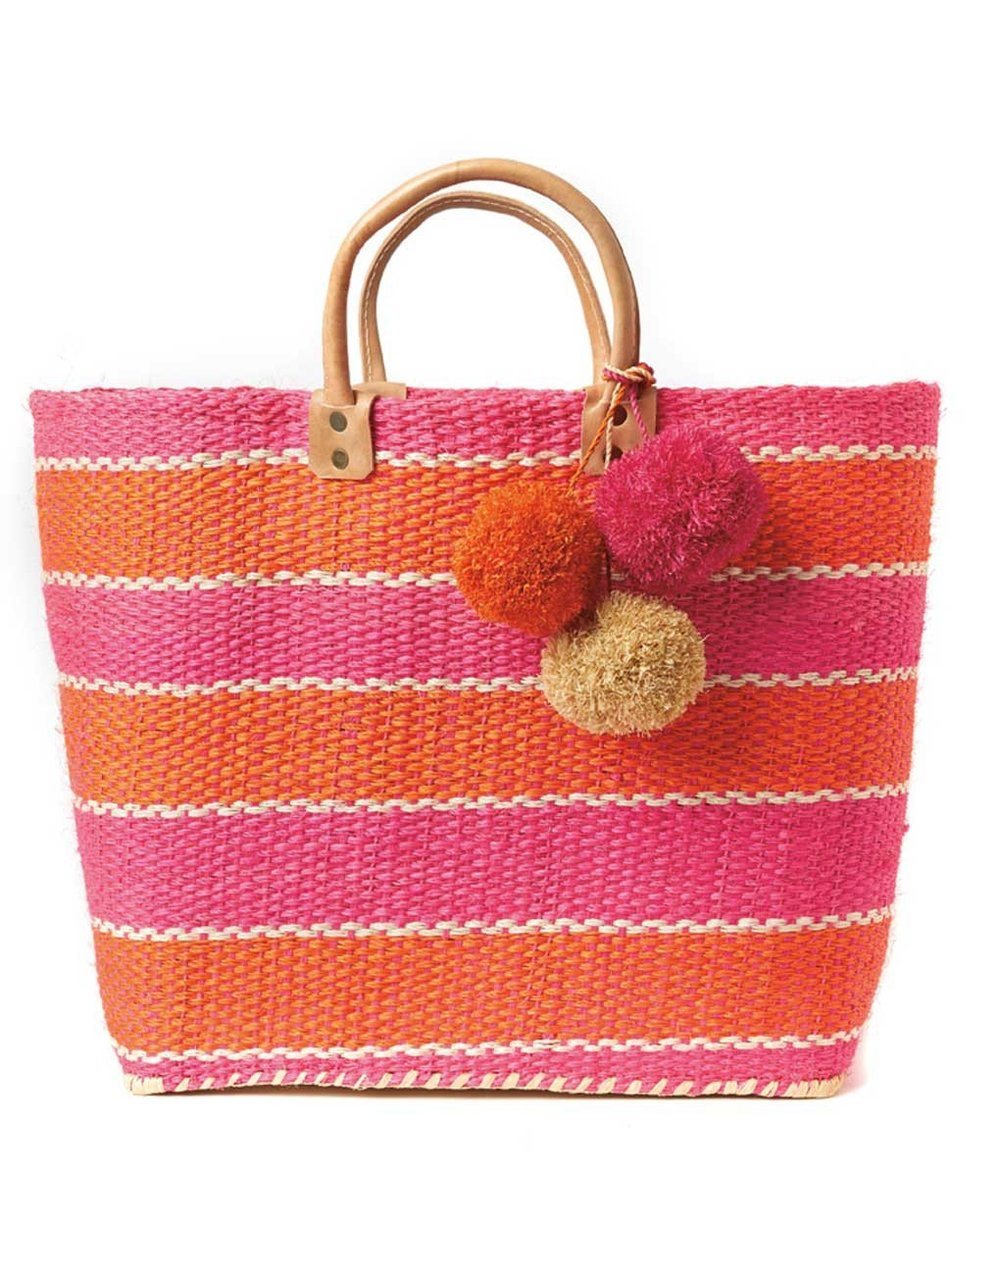 THE LITTLE MARKET   Pom Pom Beach Bag - Flamingo